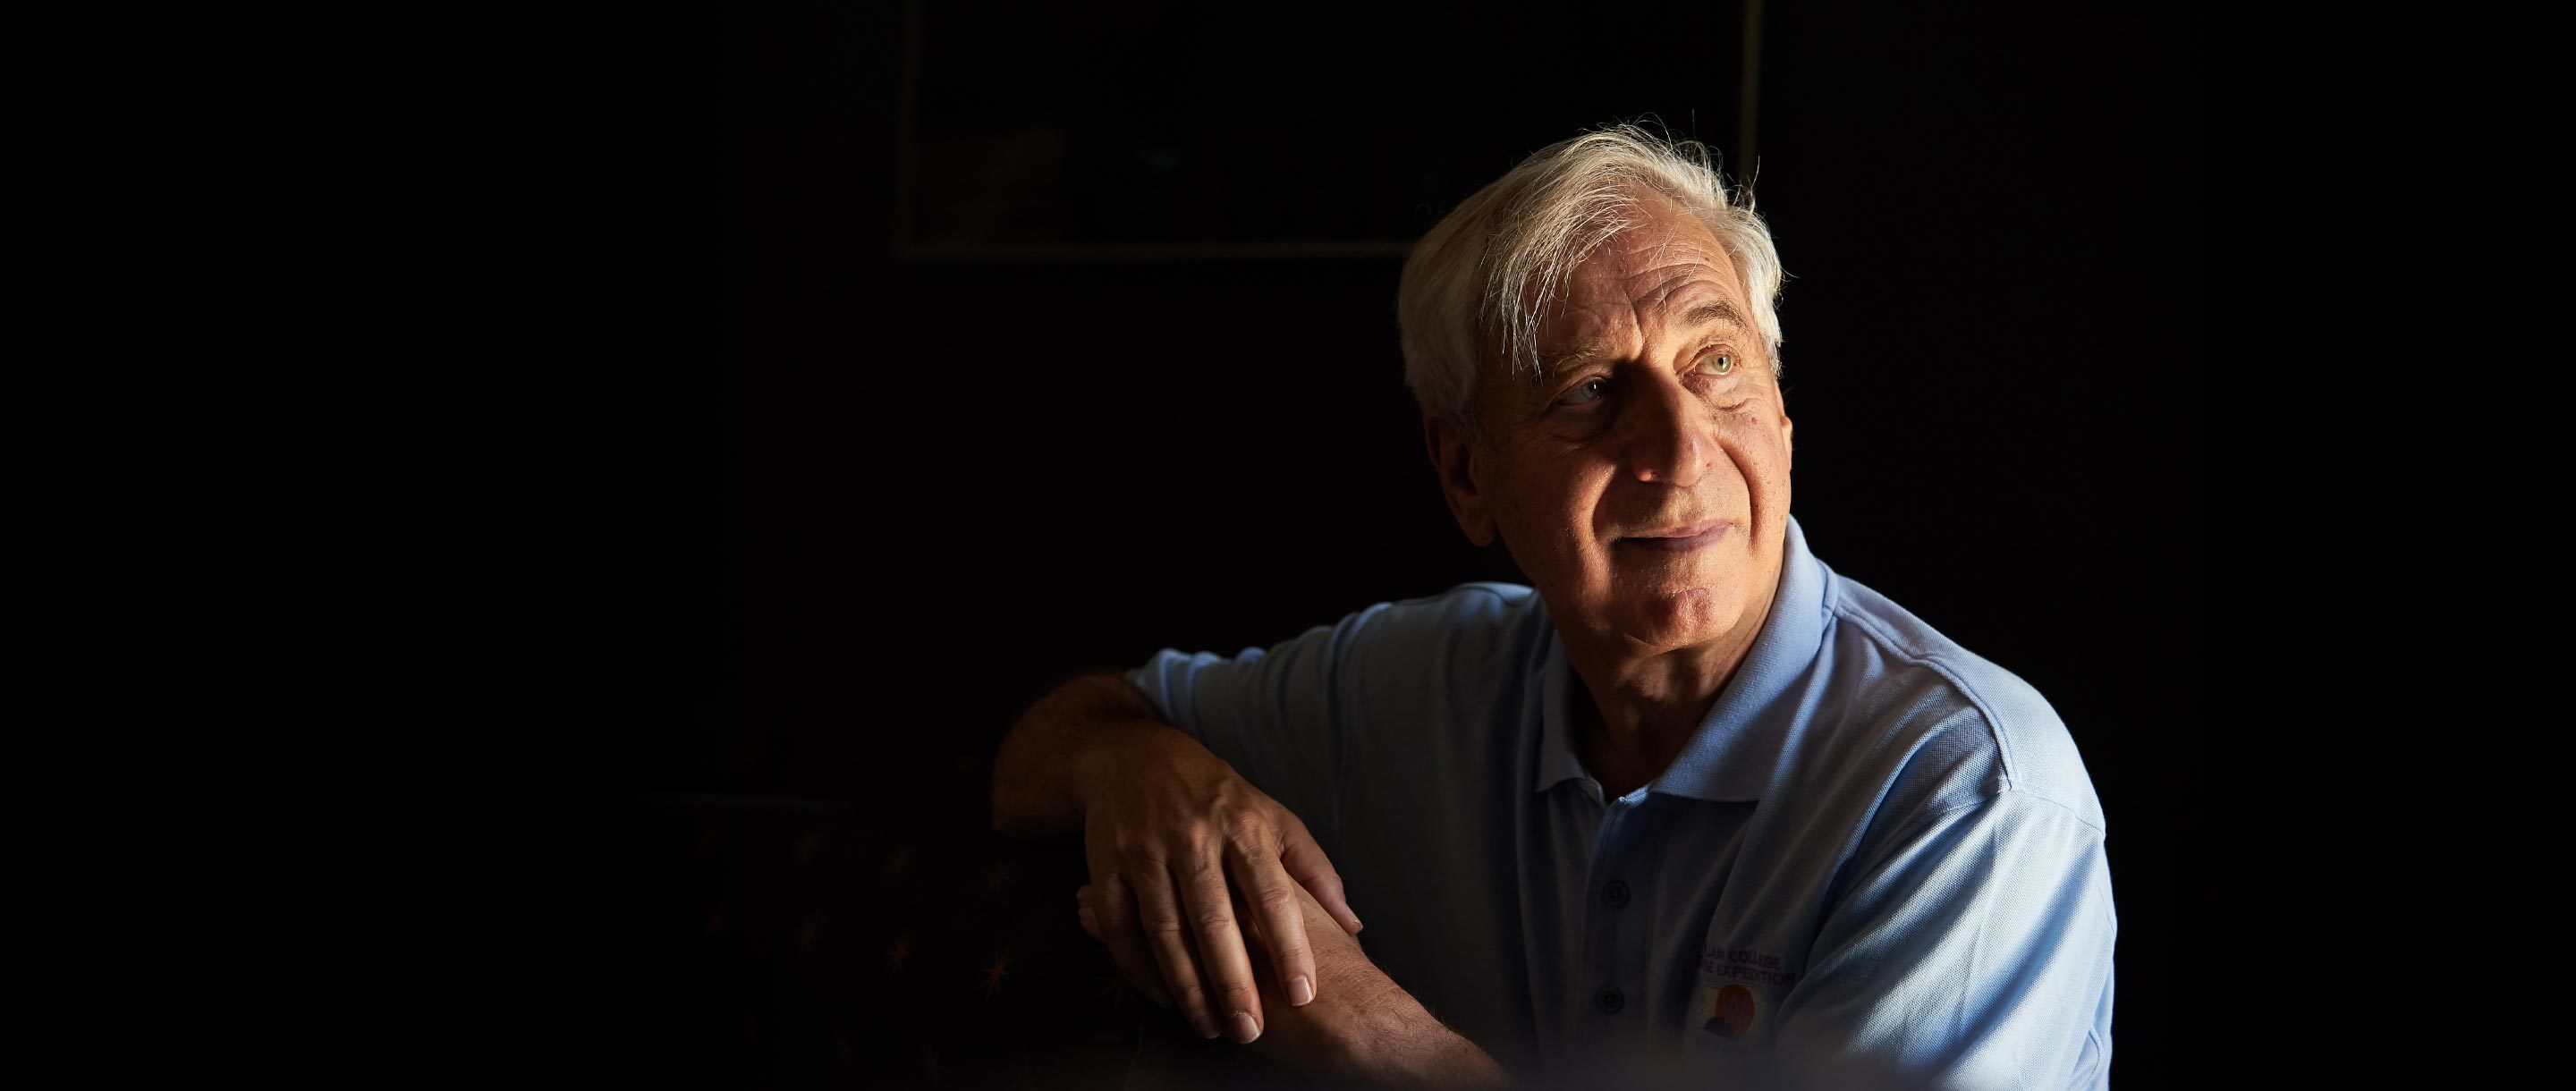 Even in the age of sun-observing satellites, astronomers like Jay Pasachoff still seek out total solar eclipses for the tales they can tell about our sun.